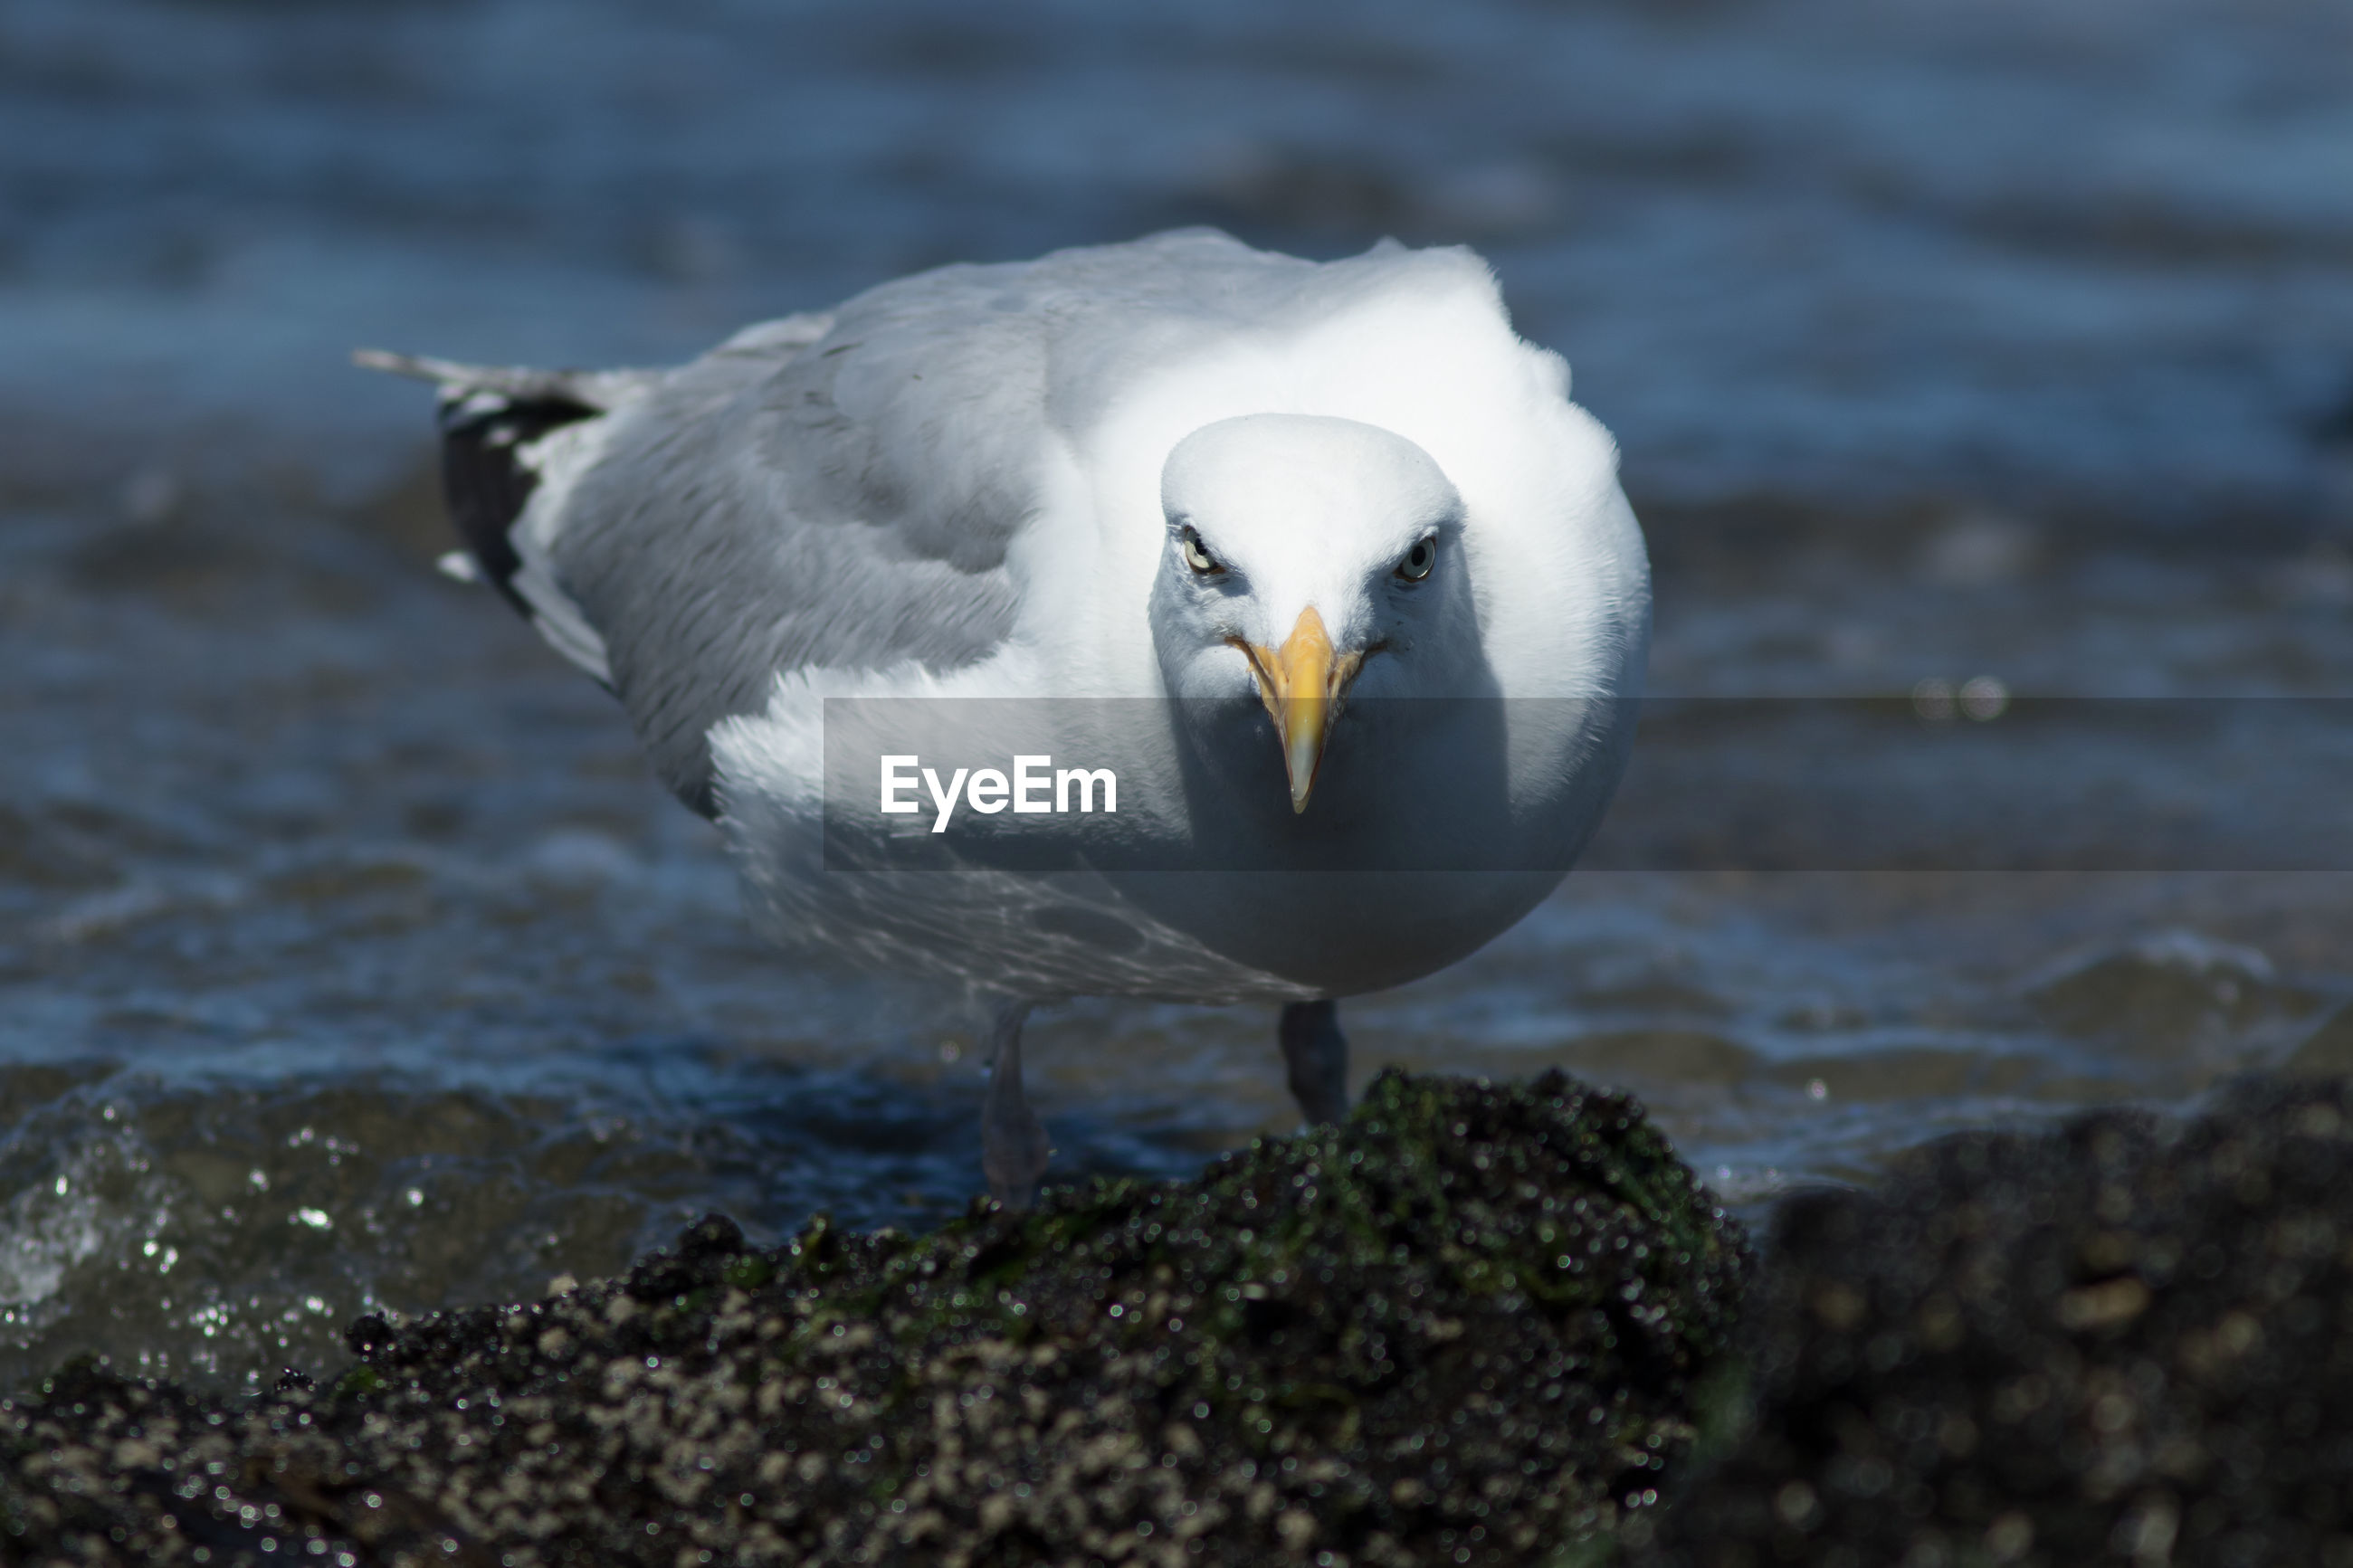 CLOSE-UP OF SEAGULL ON A BEACH